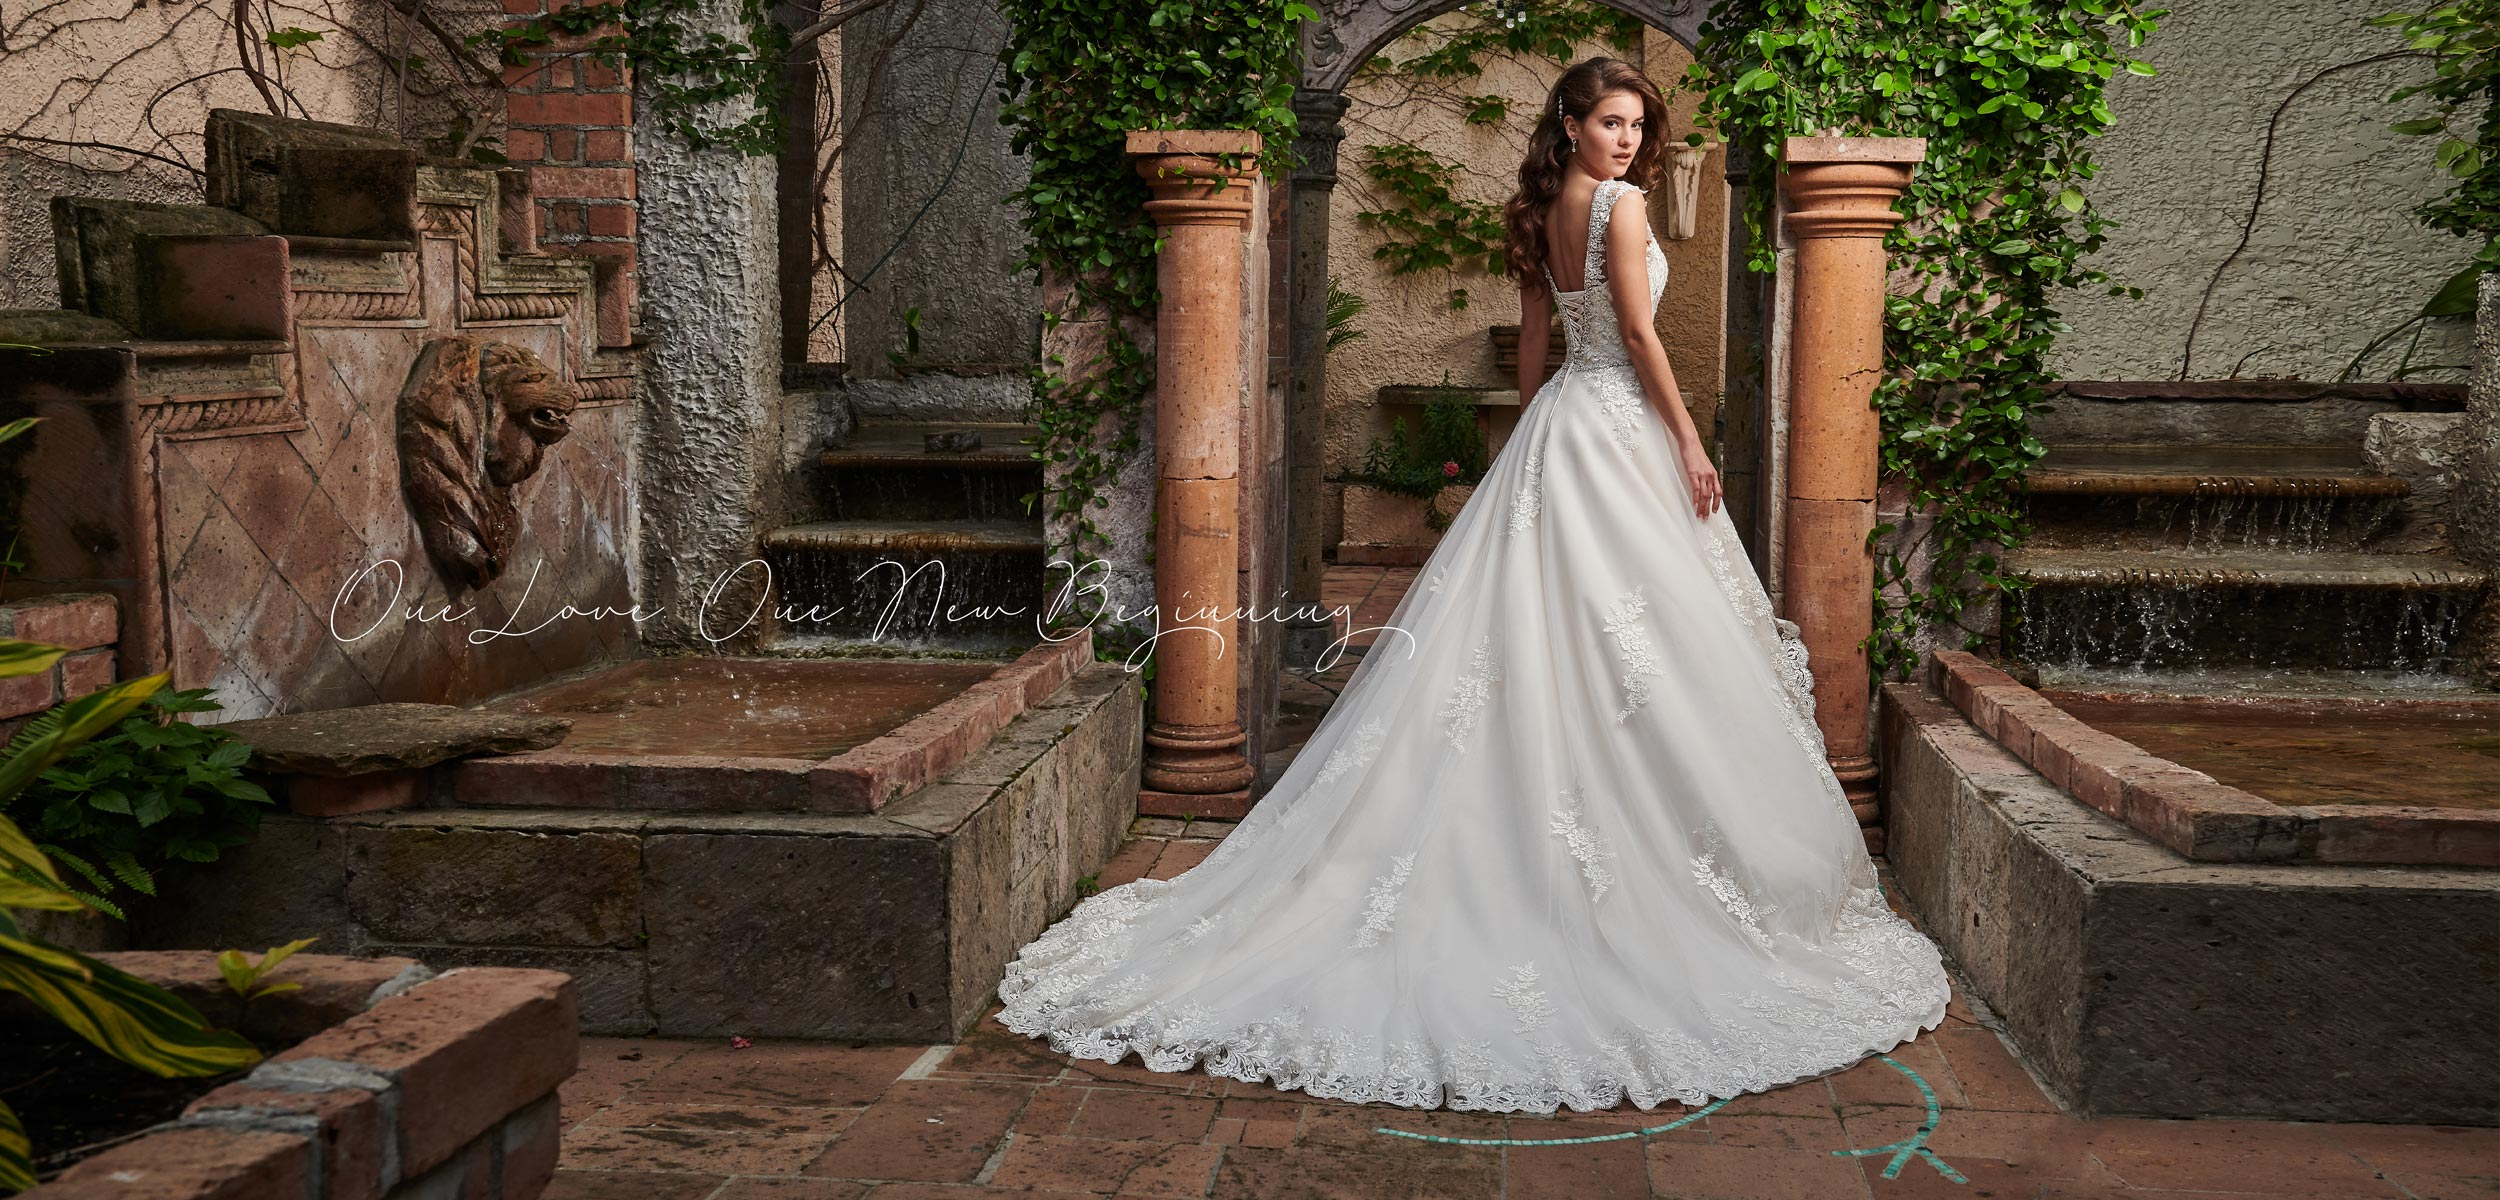 Marys Bridal - The Official Site of Marys Bridal